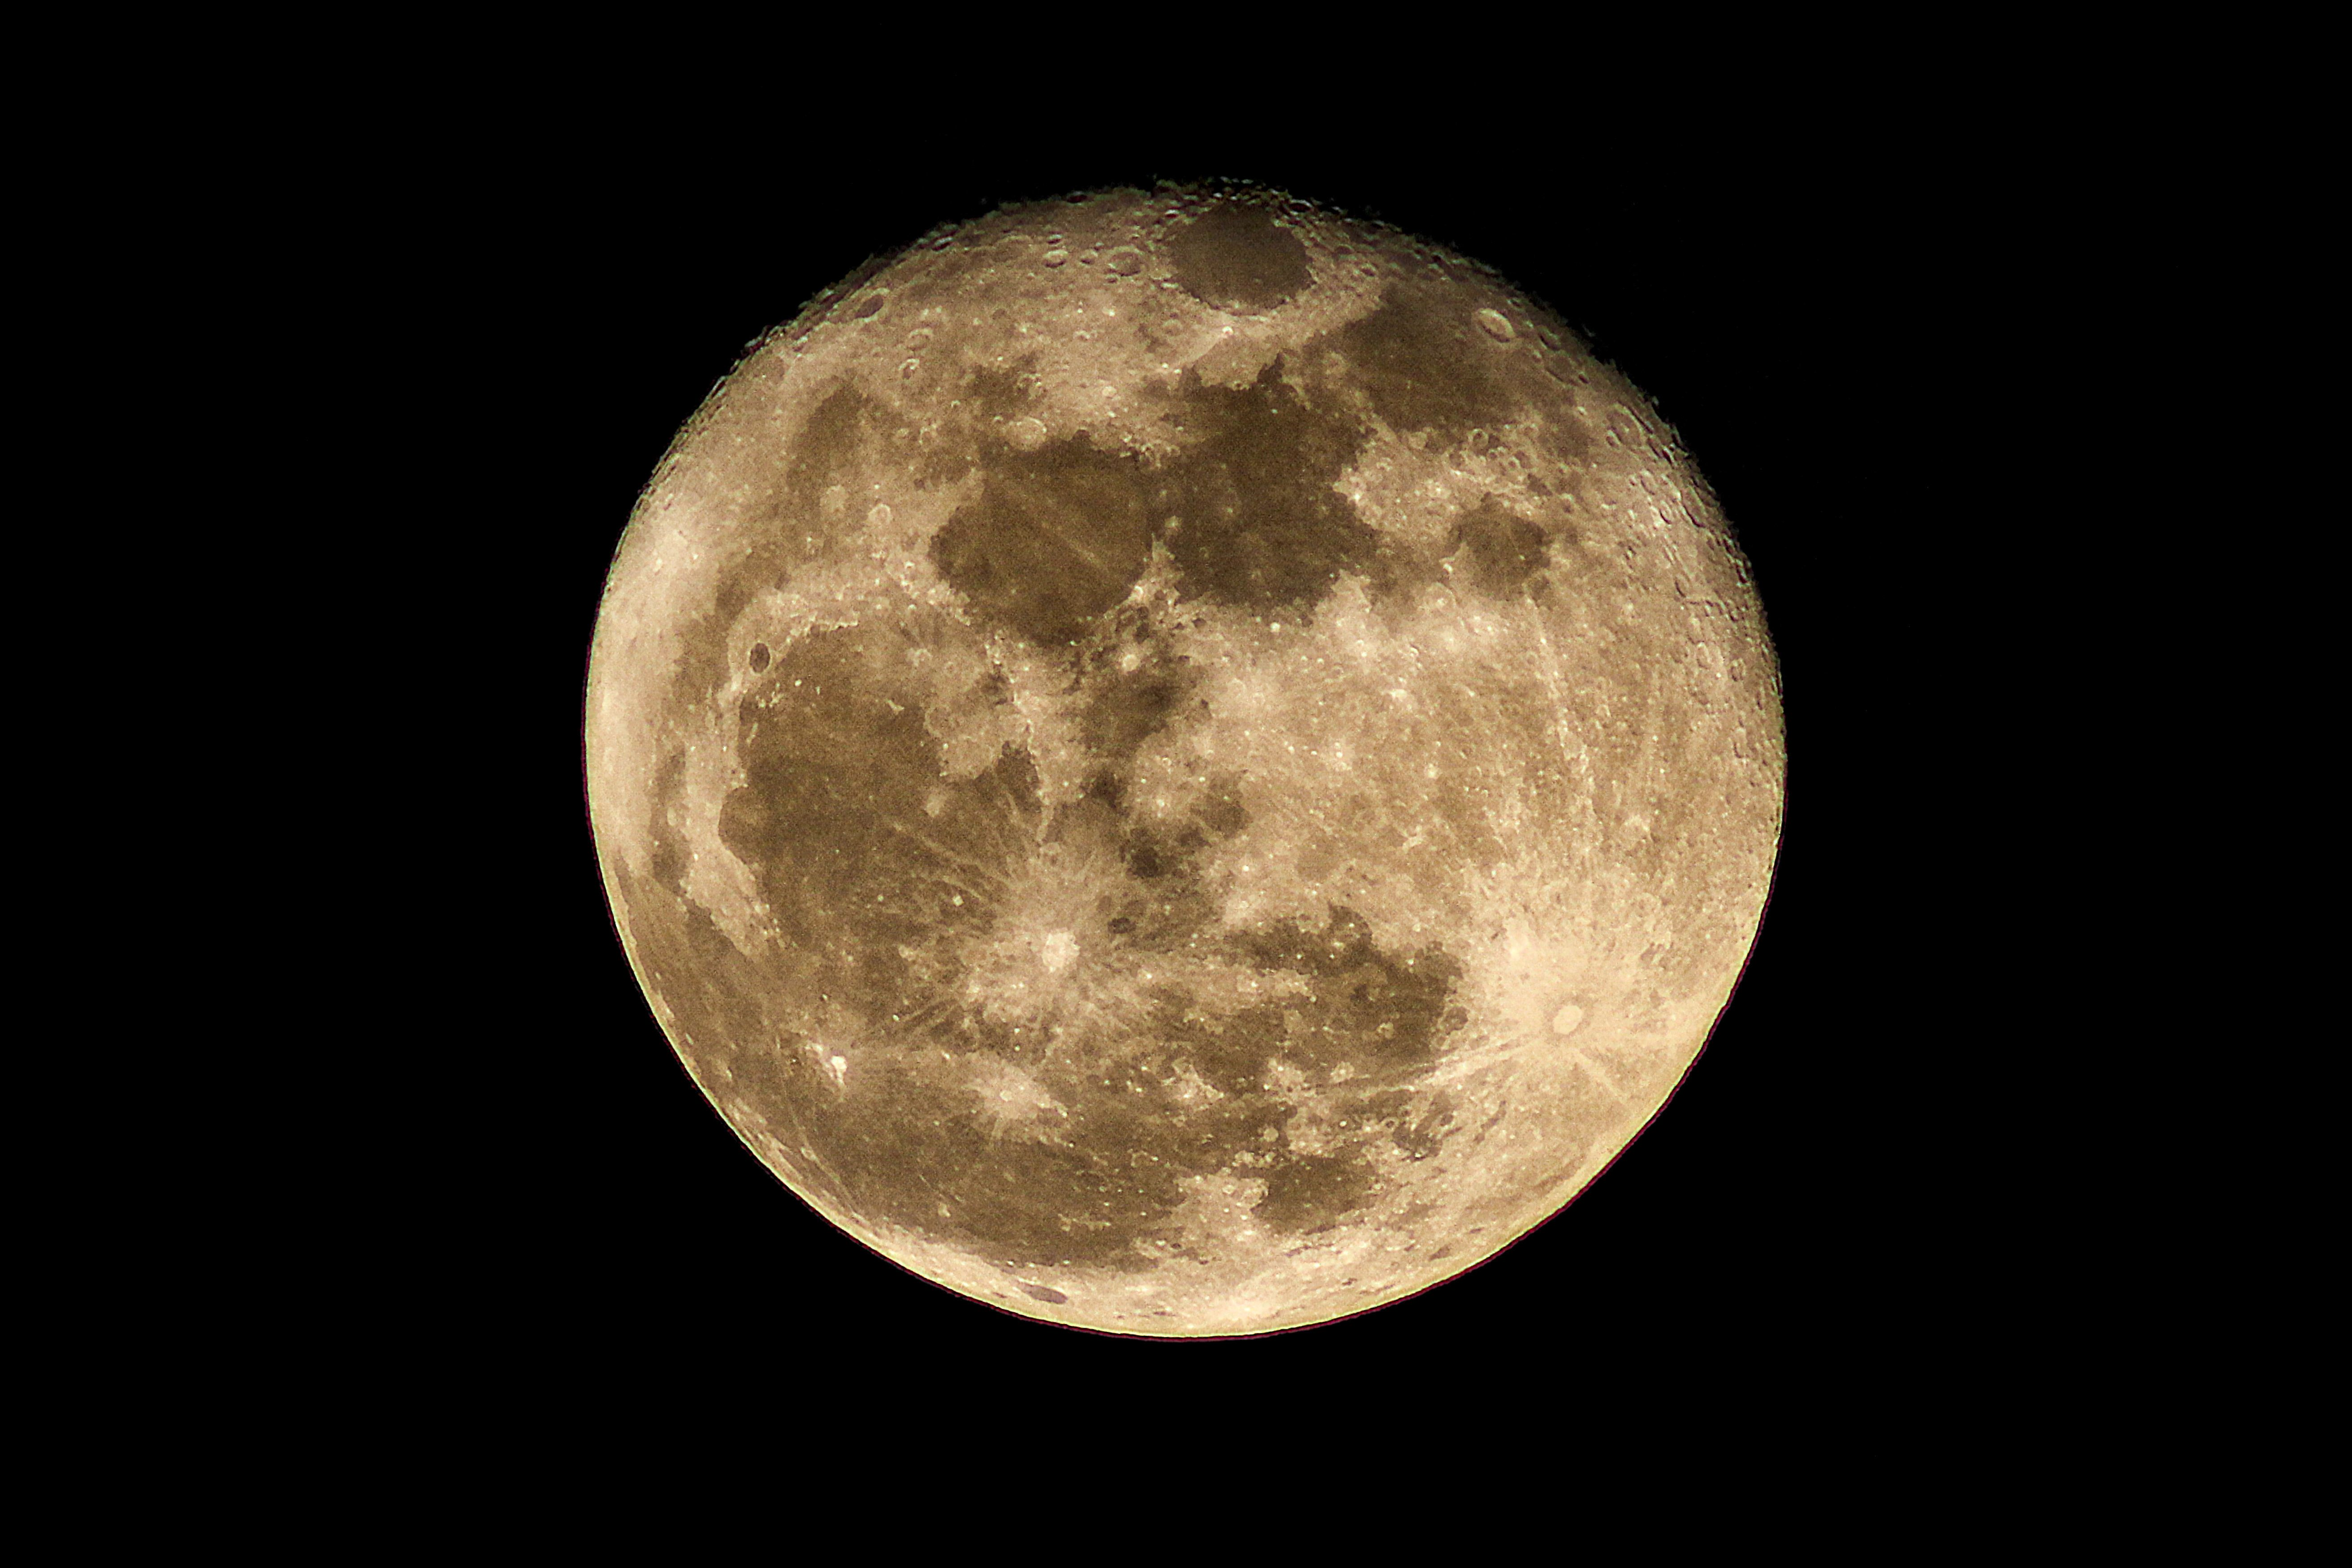 A supermoon is the coincidence of a full moon or a new moon with the closest approach the Moon makes to the Earth on its elliptical orbit, resulting in the largest apparent size of the lunar disk as seen from Earth. The technical name is the perigee-syzygy of the Earth–Moon–Sun system. The term supermoon is not astronomical, but originated in modern astrology. The association of the Moon with both oceanic and crustal tides has led to claims that the supermoon phenomenon may be associated with increased risk of events such as earthquakes and volcanic eruptions, but this effect is very slight. The opposite phenomenon, an apogee-syzygy, has been called a micromoon, though this term is not as widespread as supermoon.